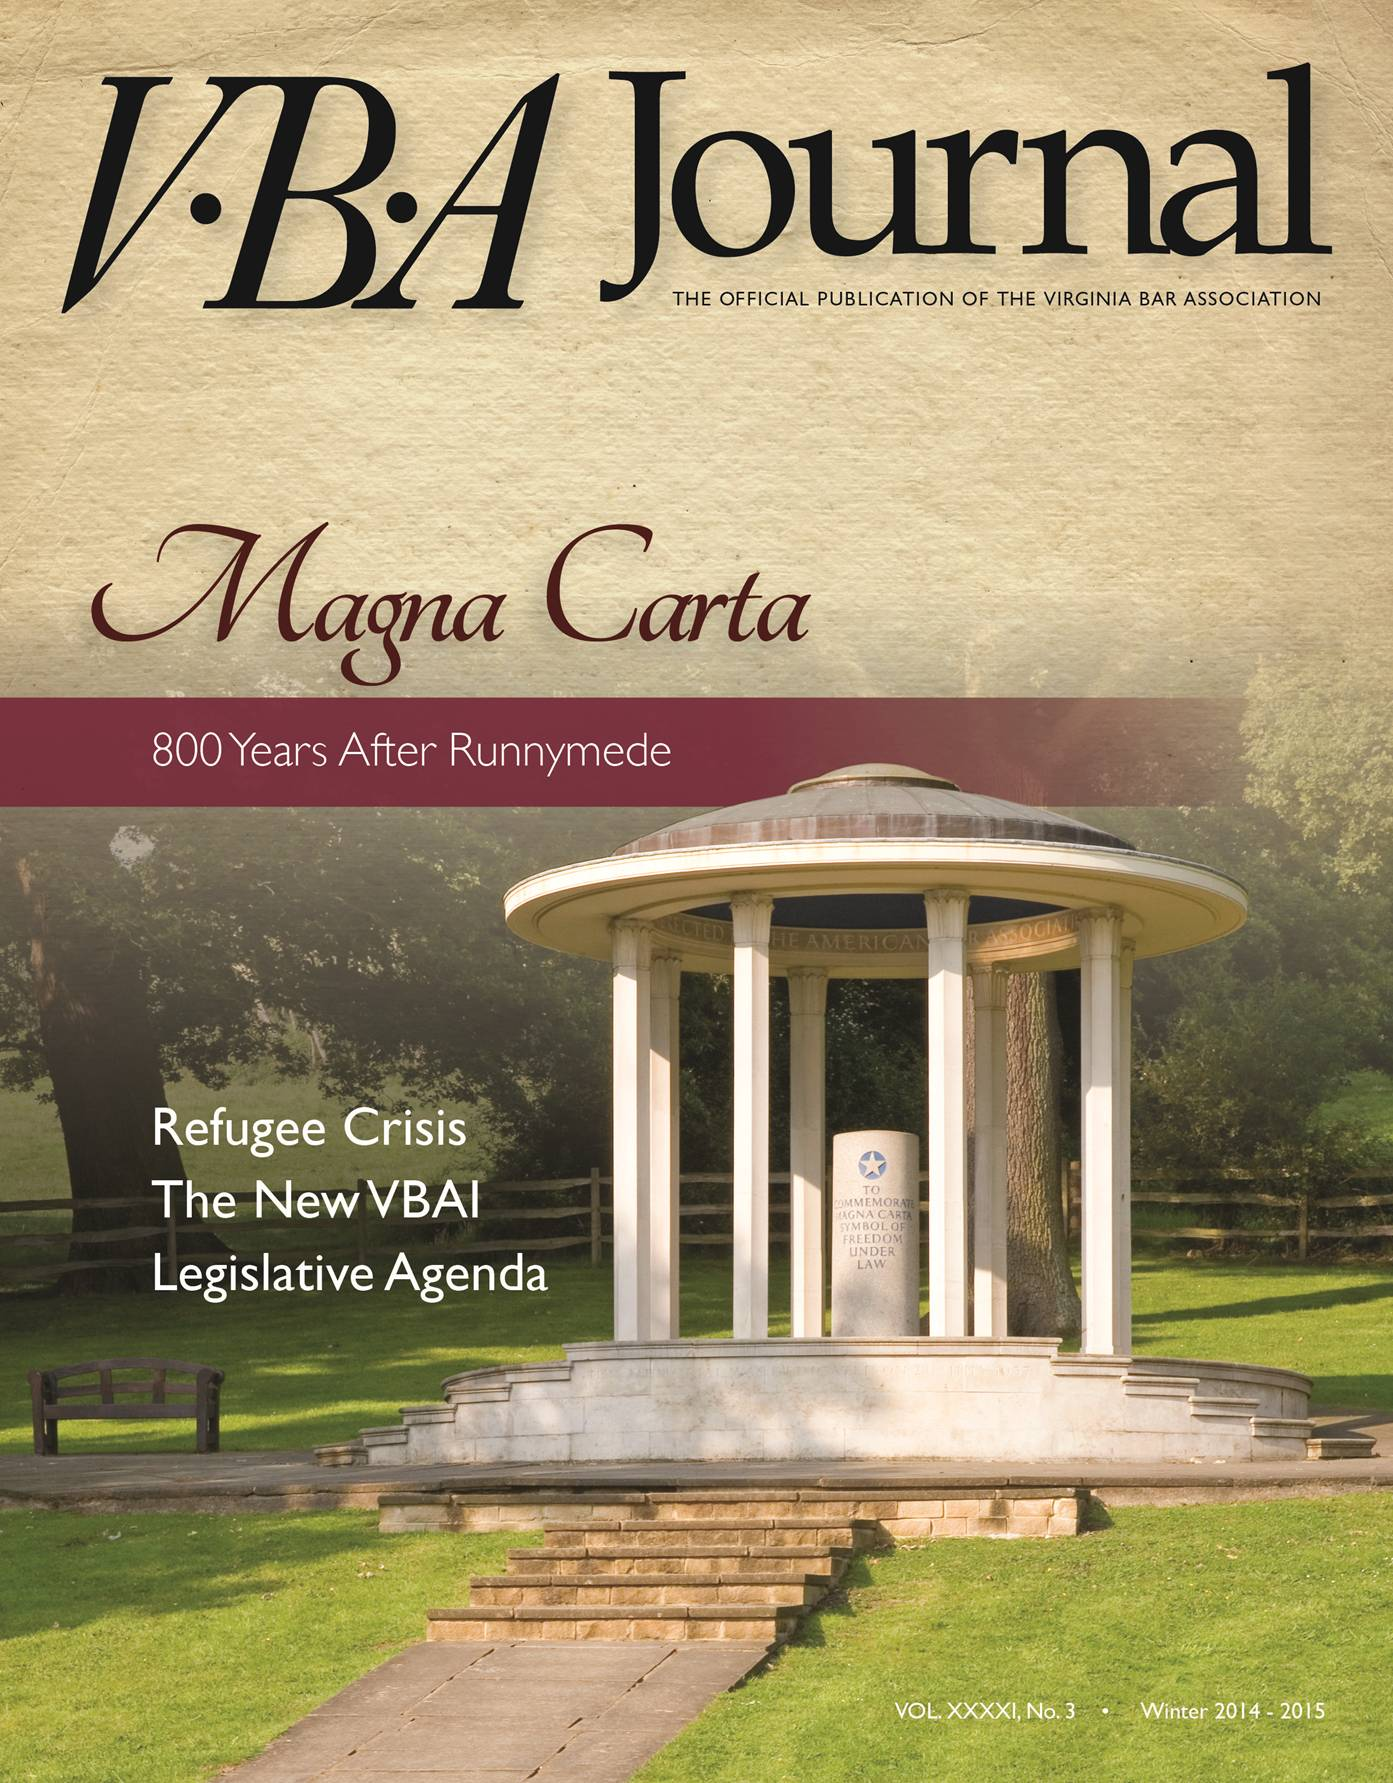 VBA Journal Winter 2014-15